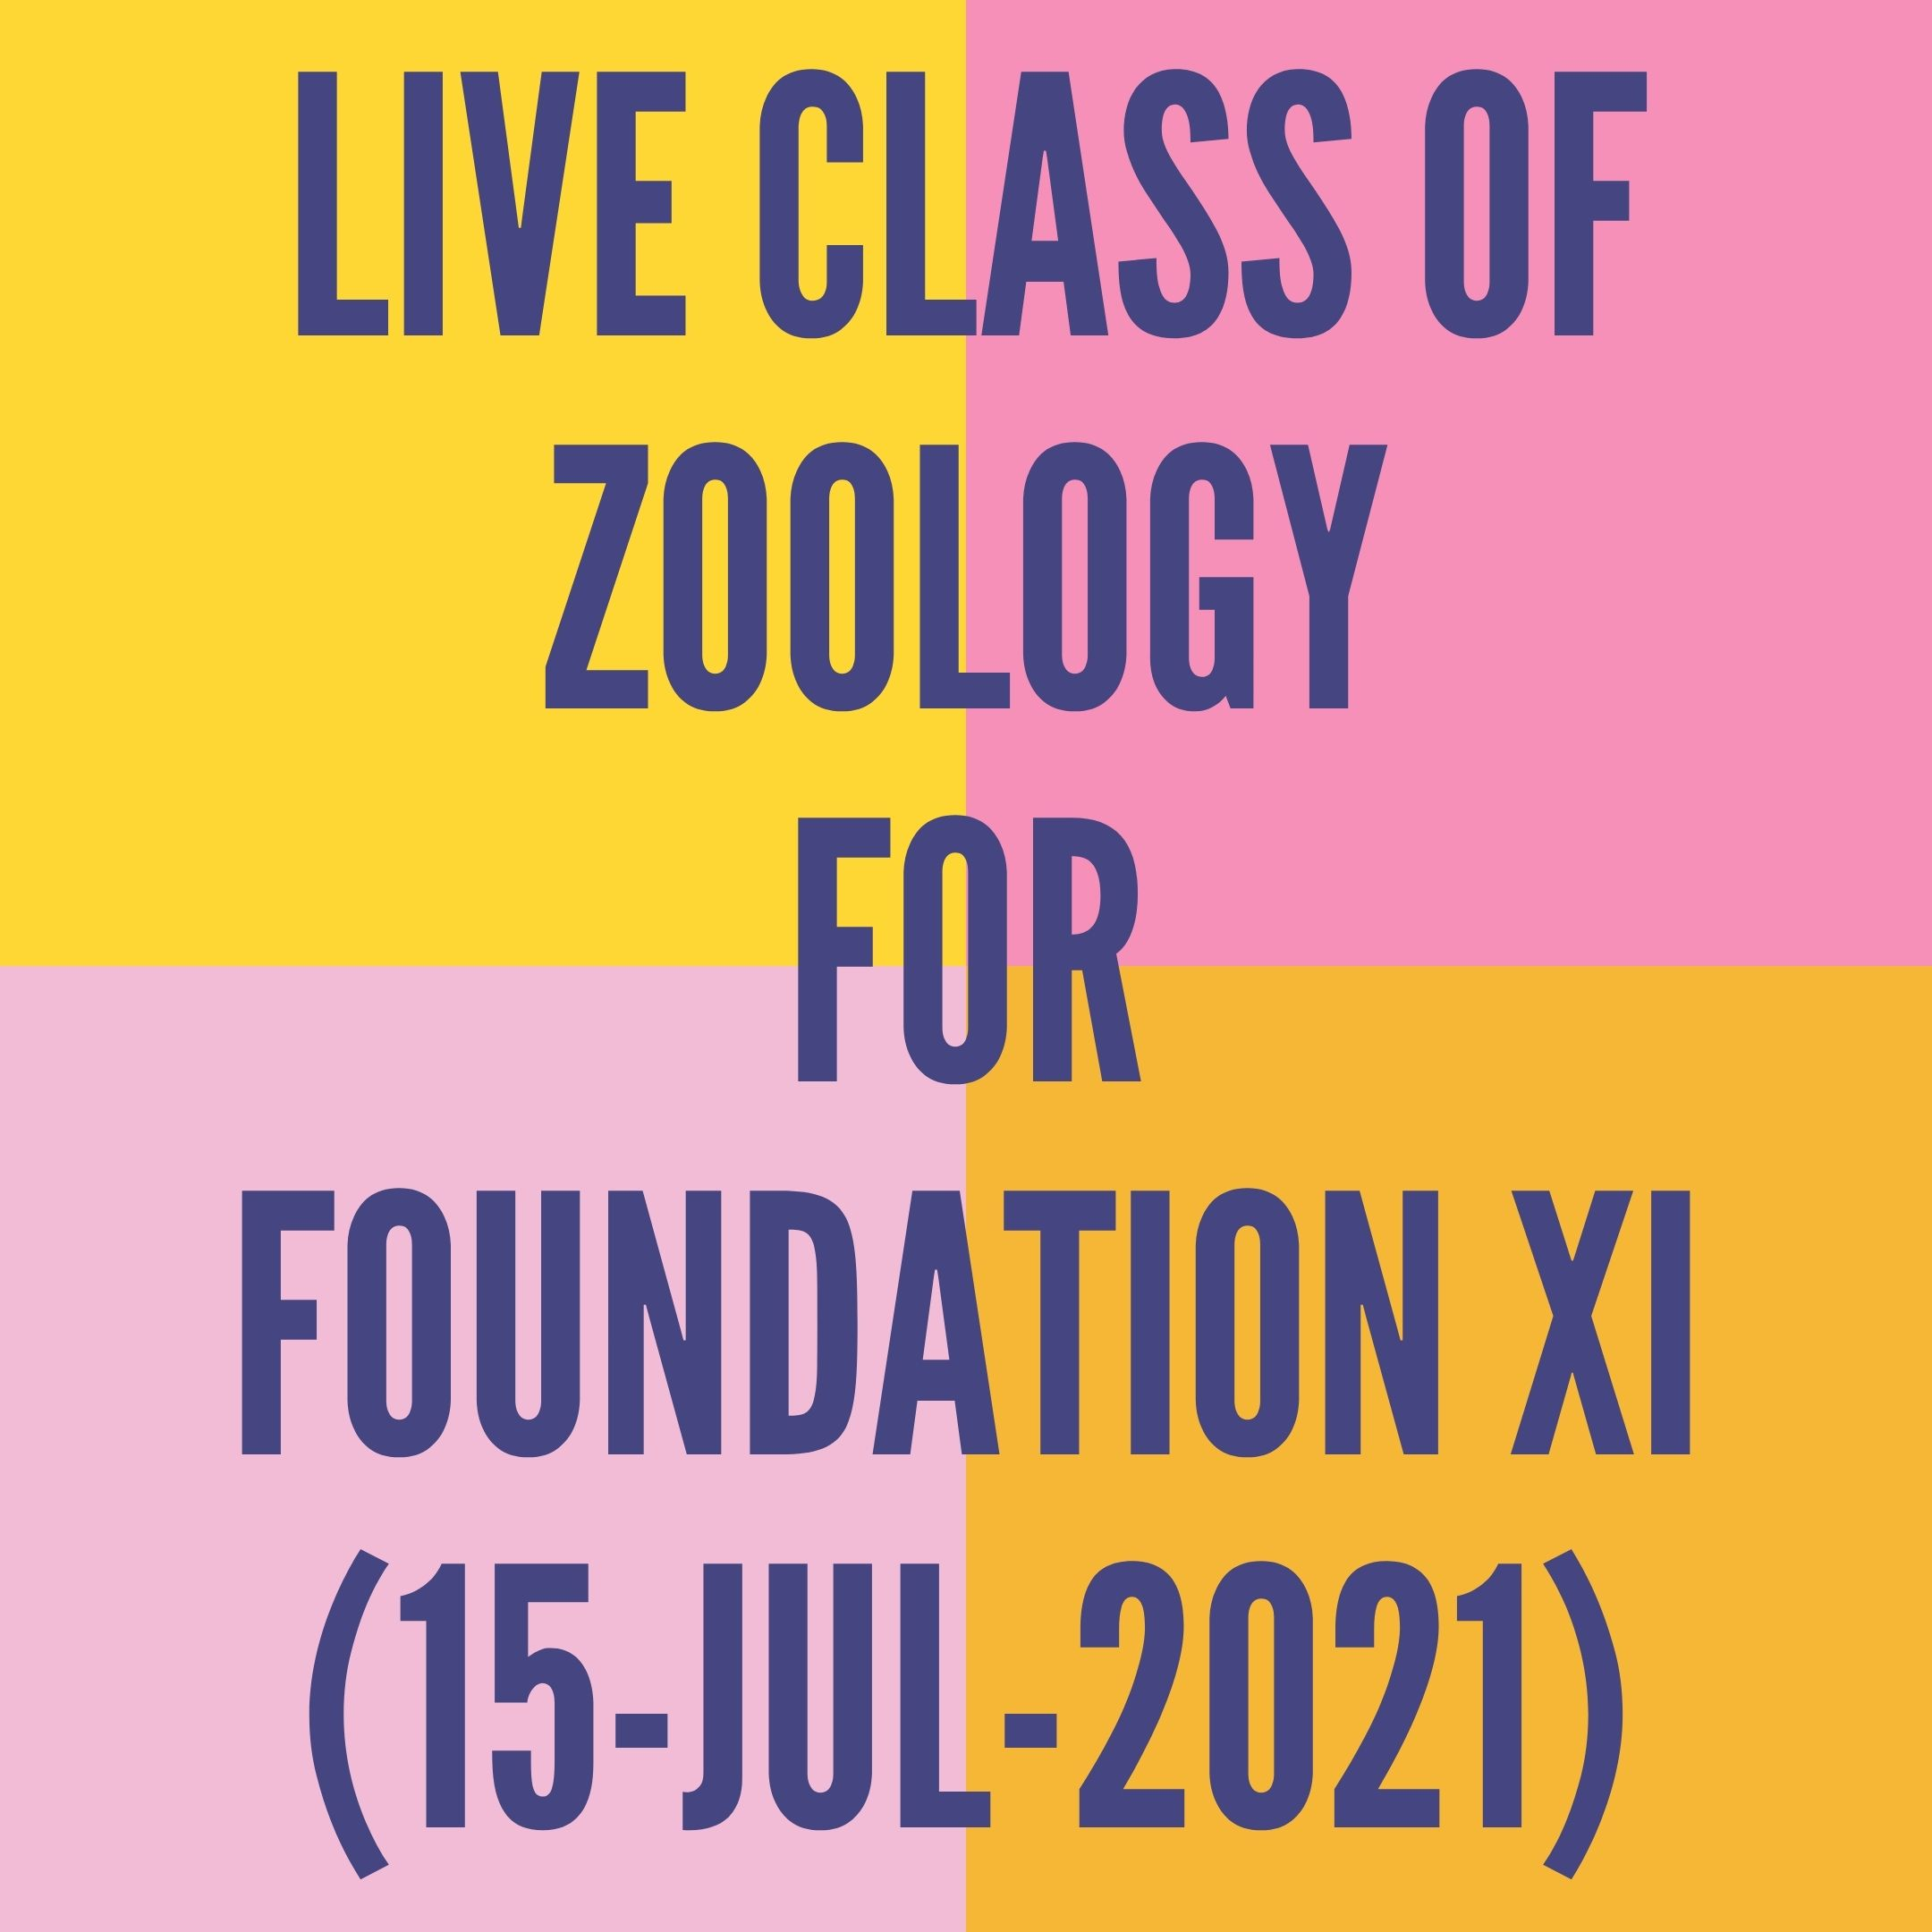 LIVE CLASS OF ZOOLOGY FOR FOUNDATION XI (15-JUL-2021) DIGESTIVE SYSTEM